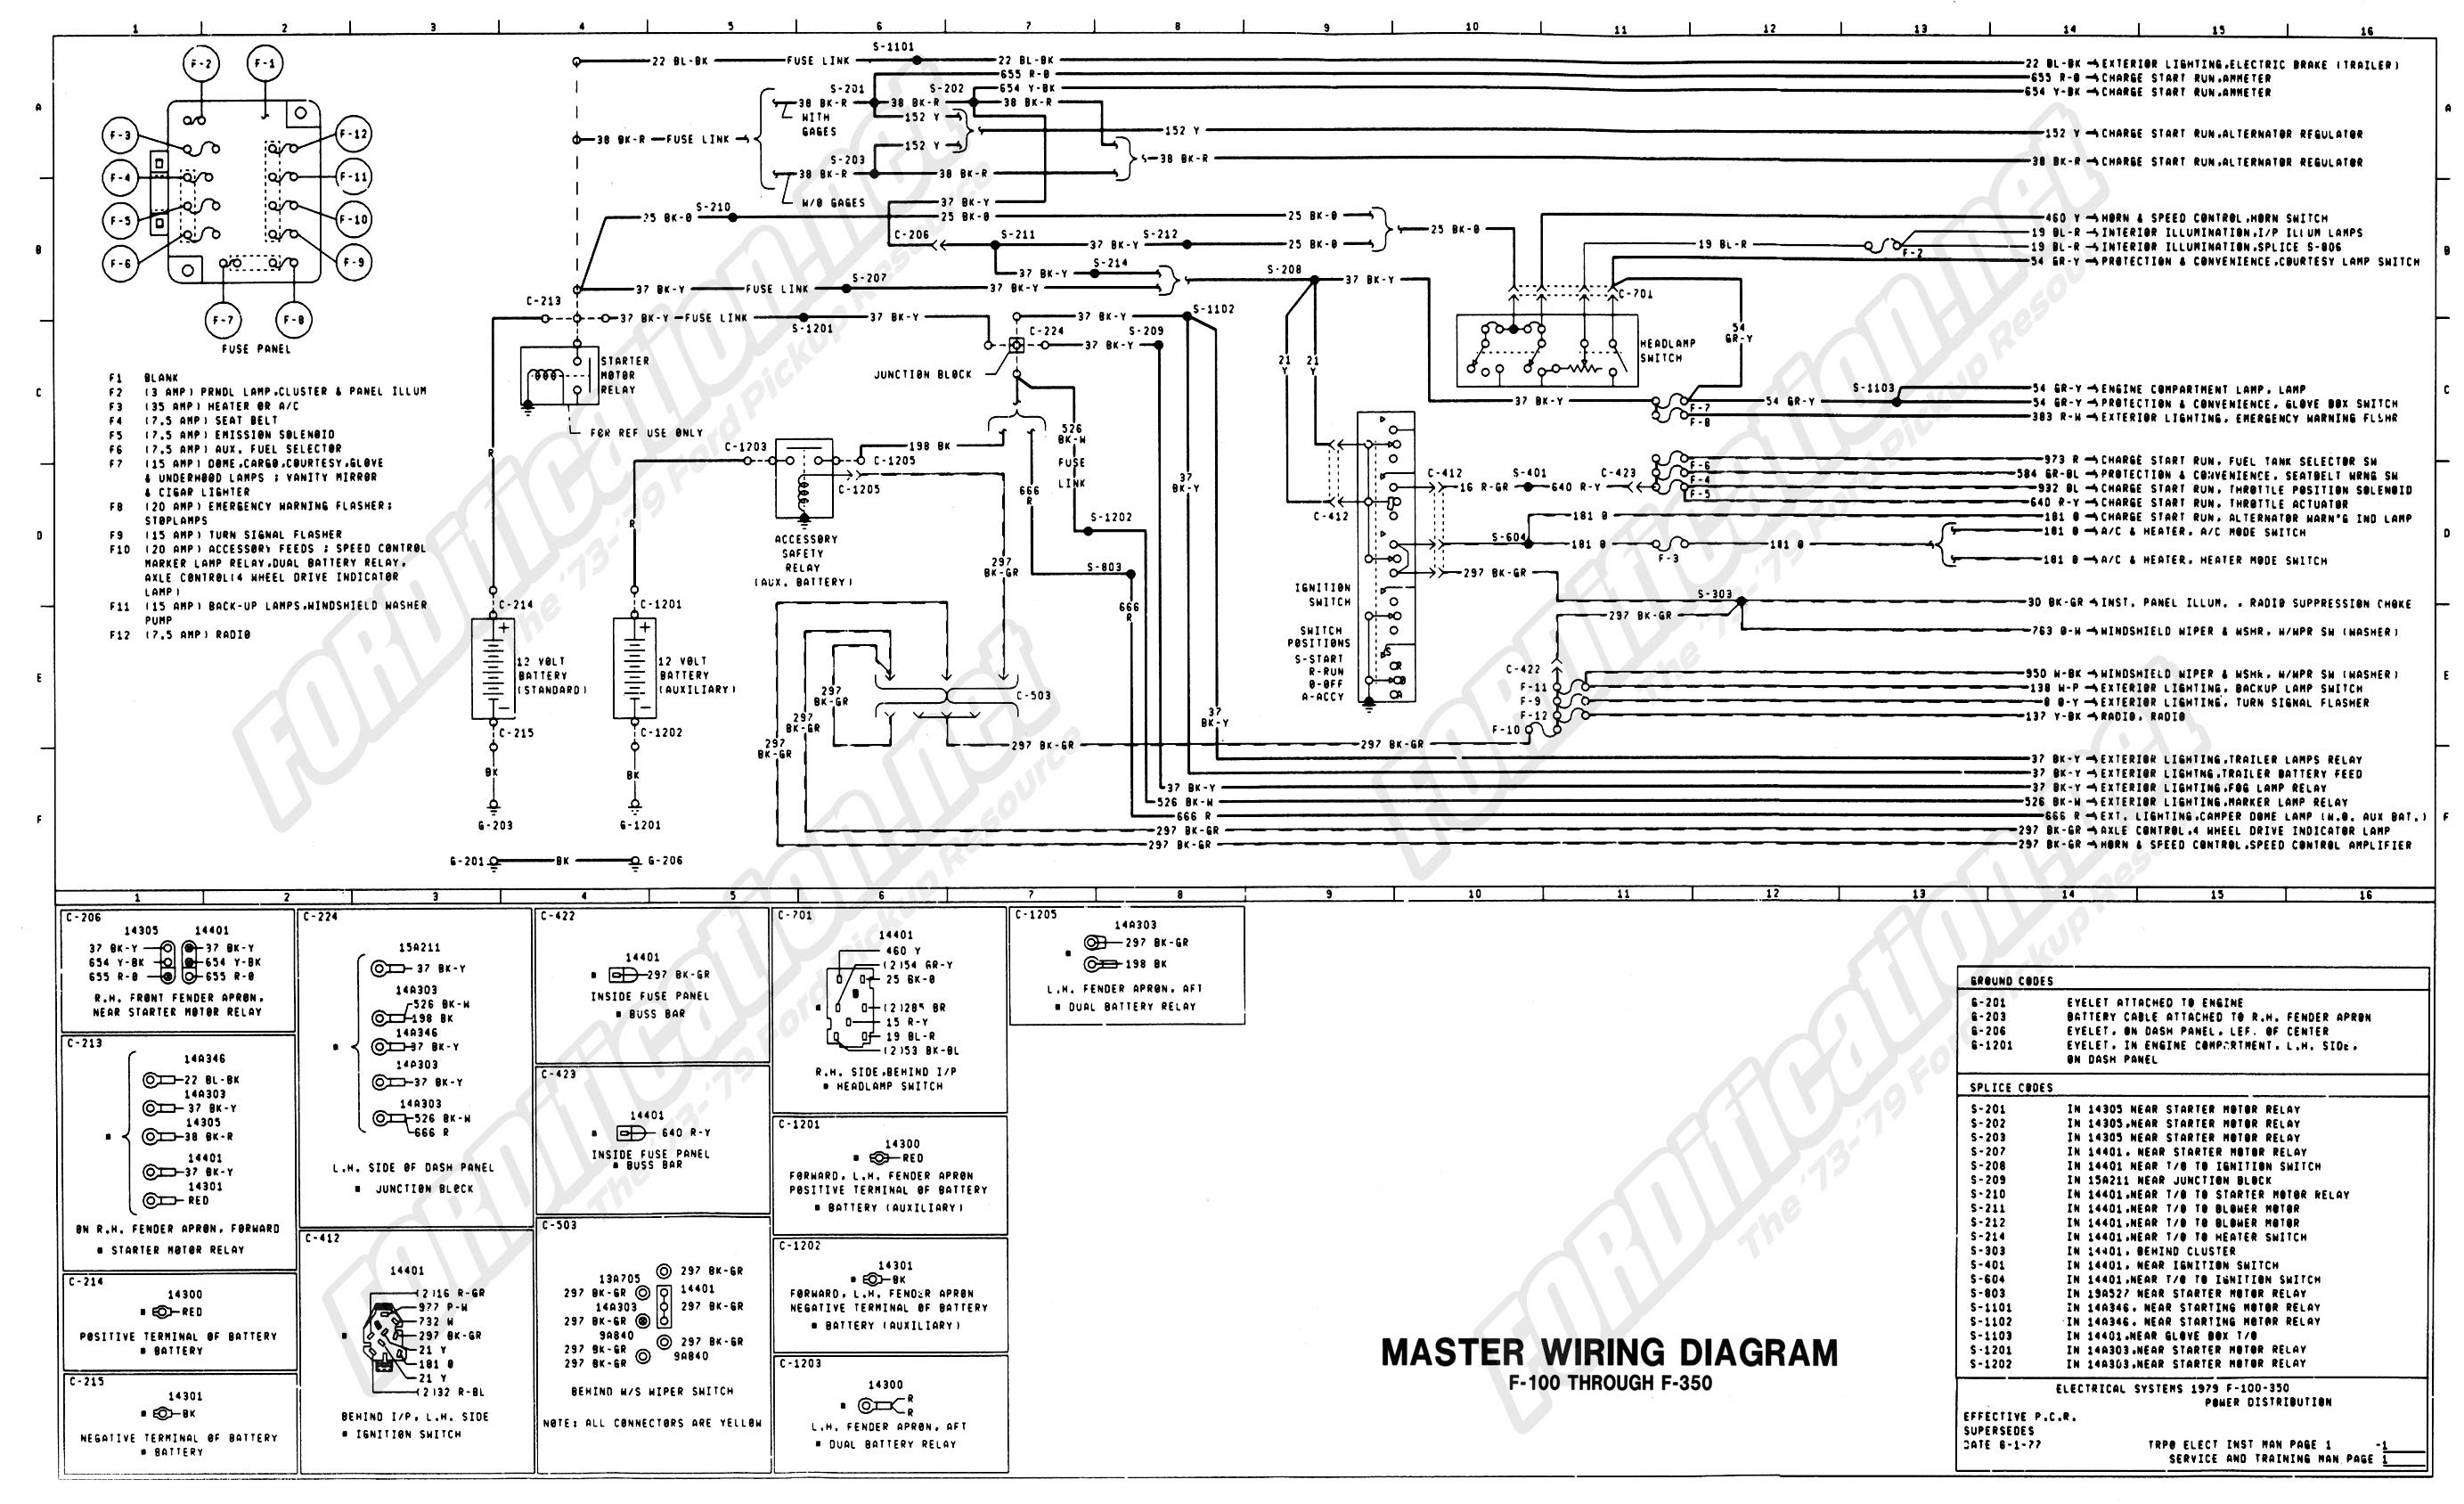 Starter Solenoid Wiring Diagram Ford from mainetreasurechest.com